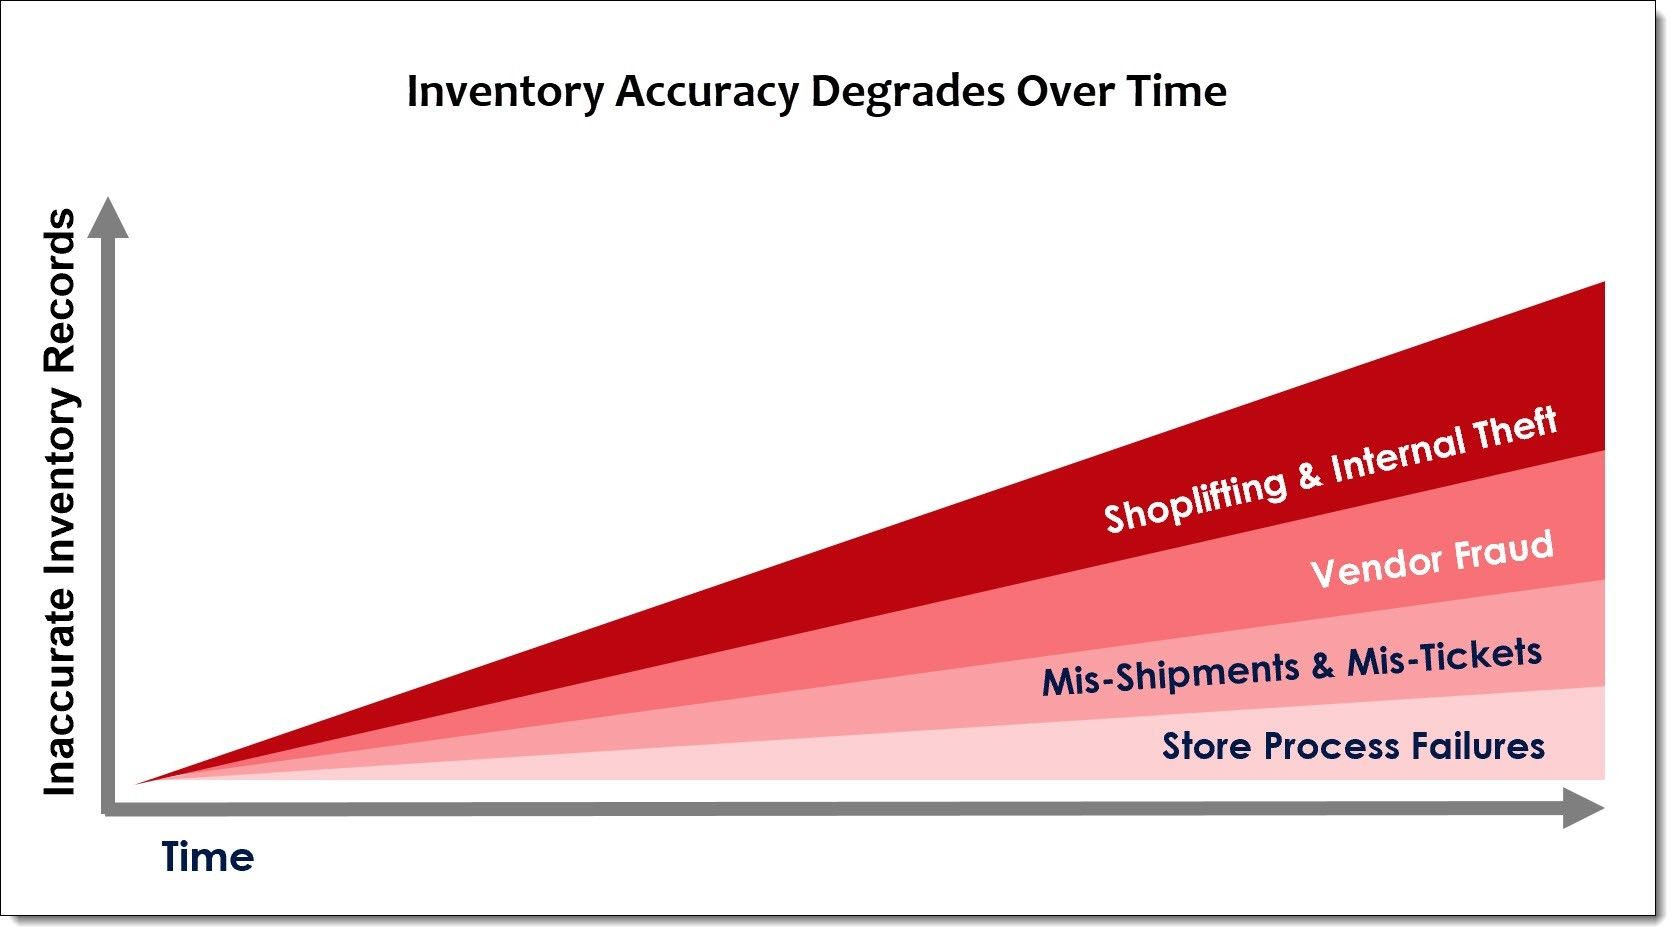 "That's right - as time increases between counts, system records become less and less accurate. This makes sense when you think about it. Theft, mis-shipments, mis-ticketing, vendor fraud, and store process failures constantly spoil inventory records. These incidents occur randomly between counts and incrementally degrade your inventory accuracy. The only way to correct your inaccurate records is to count, returning your system to a state of ""operational bliss."" This description actually came from one client relaying how their omnichannel process works so much better after full counts.  Here's a visual representation of how this works."